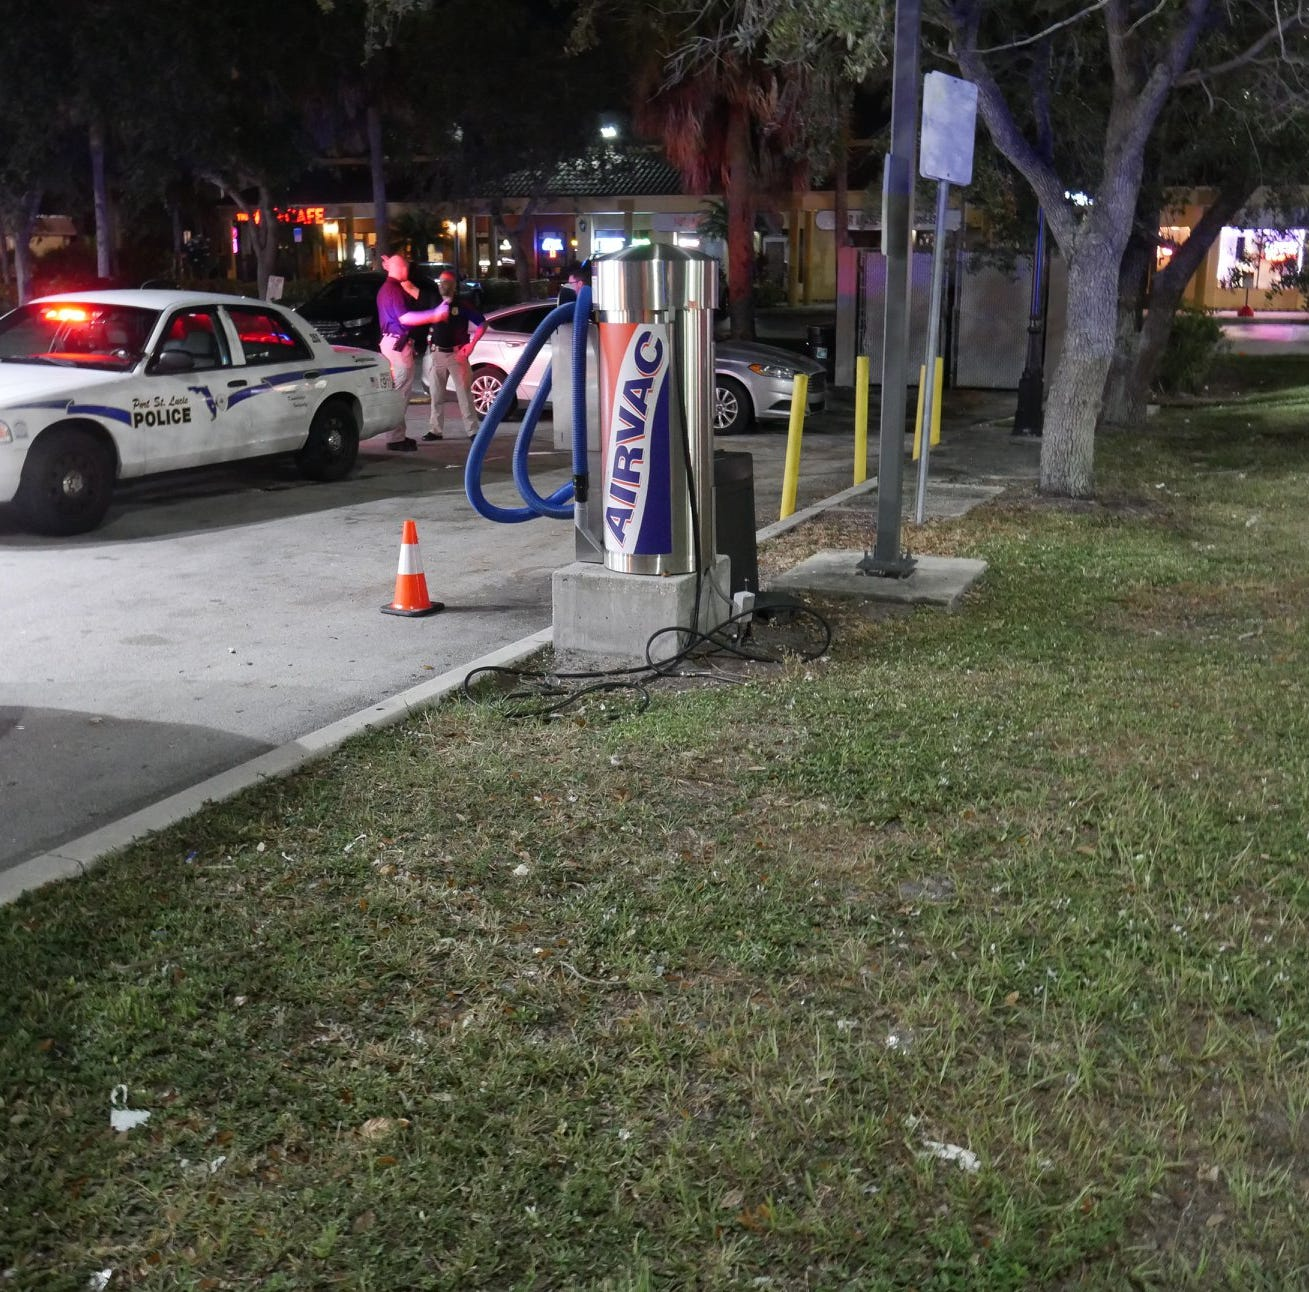 Man shot in neck after drug deal gone wrong, Port St. Lucie police say